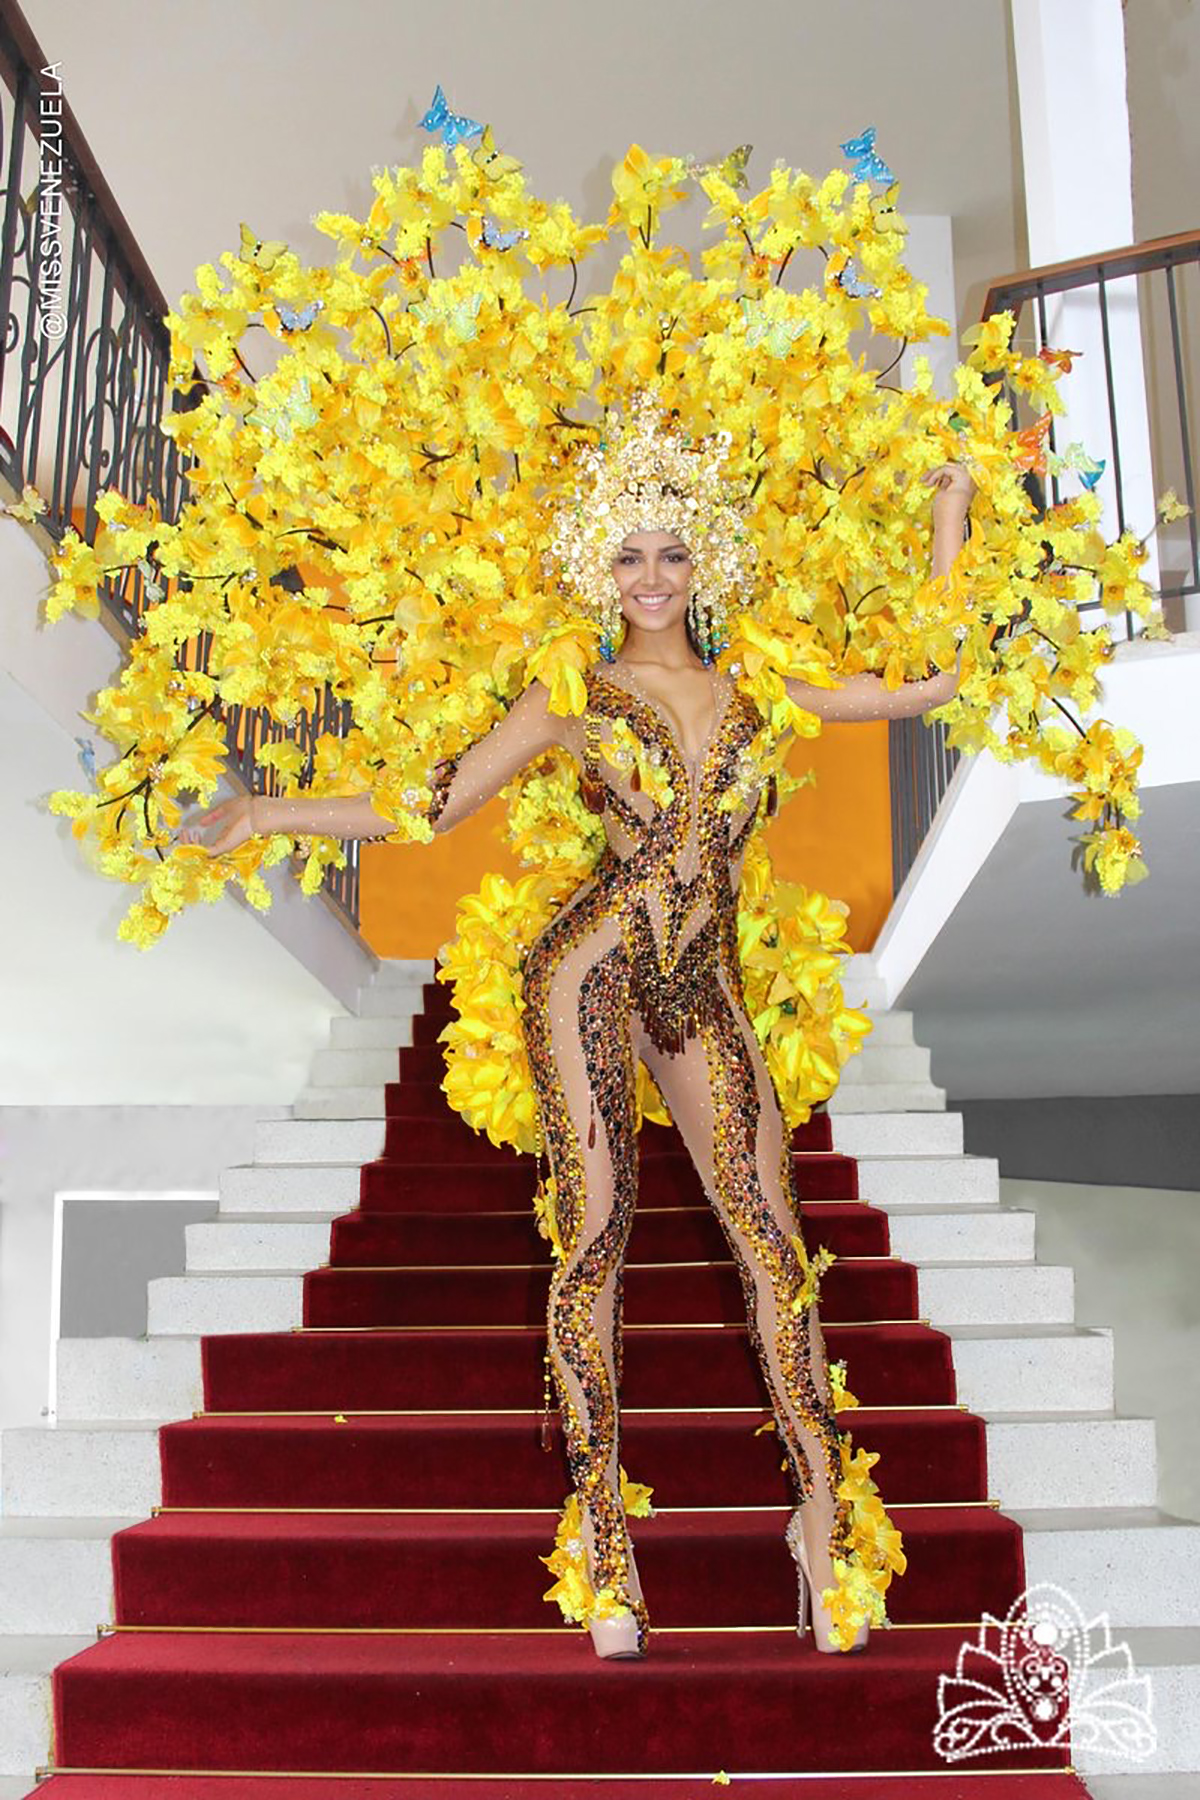 Migbelis Castellanos with the typical costume in Miss Universe